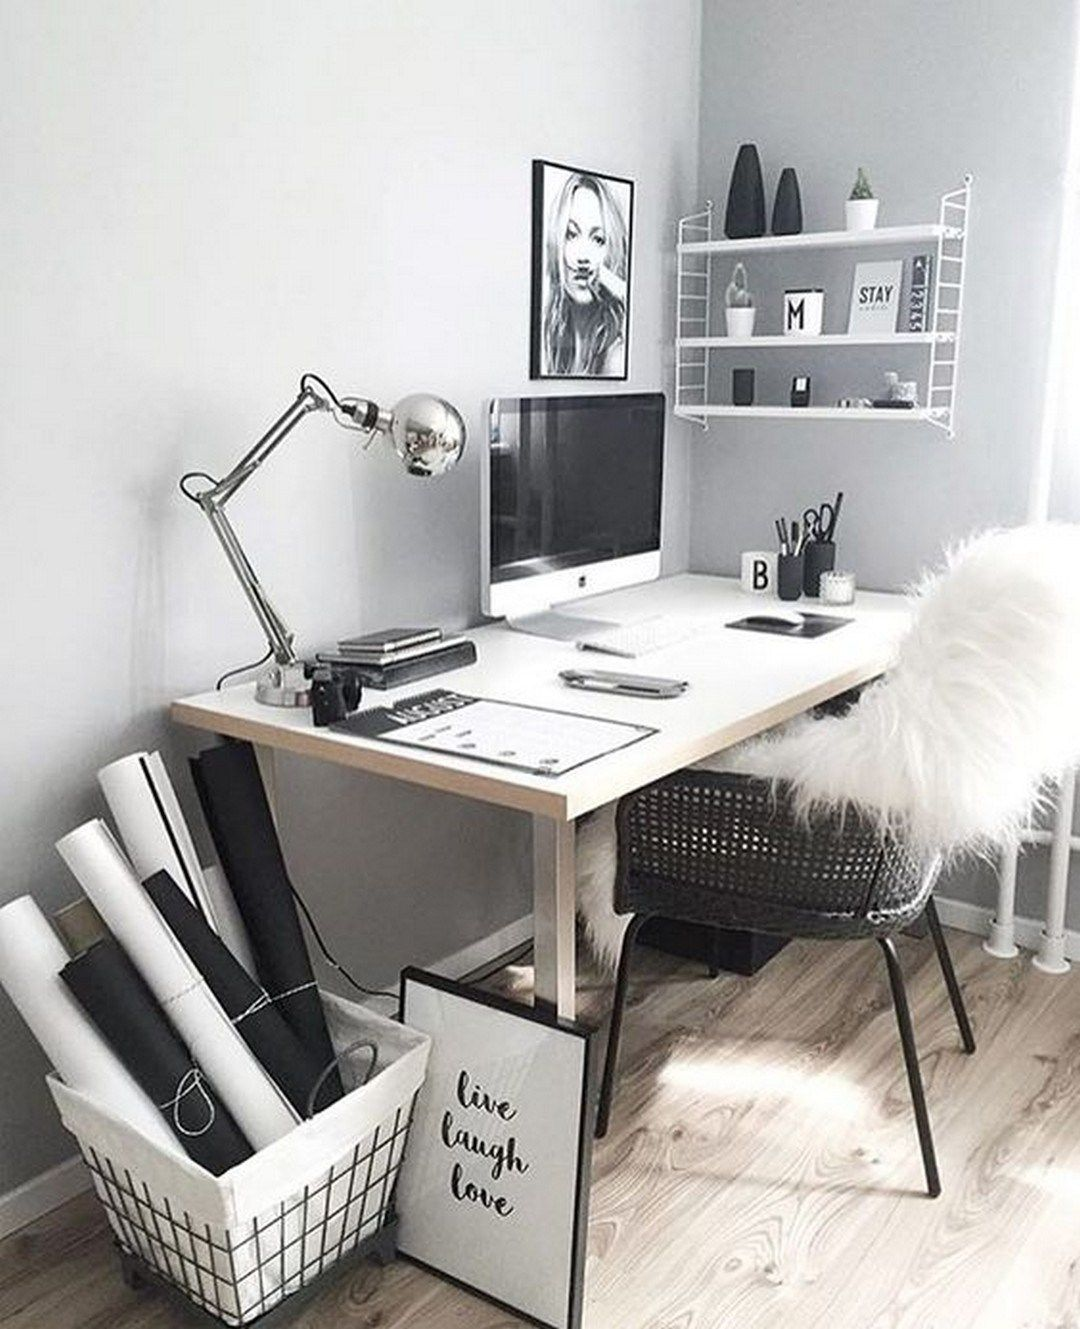 Several Chic And Cute Desk Decoration Ideas You Should Copy Room Decor